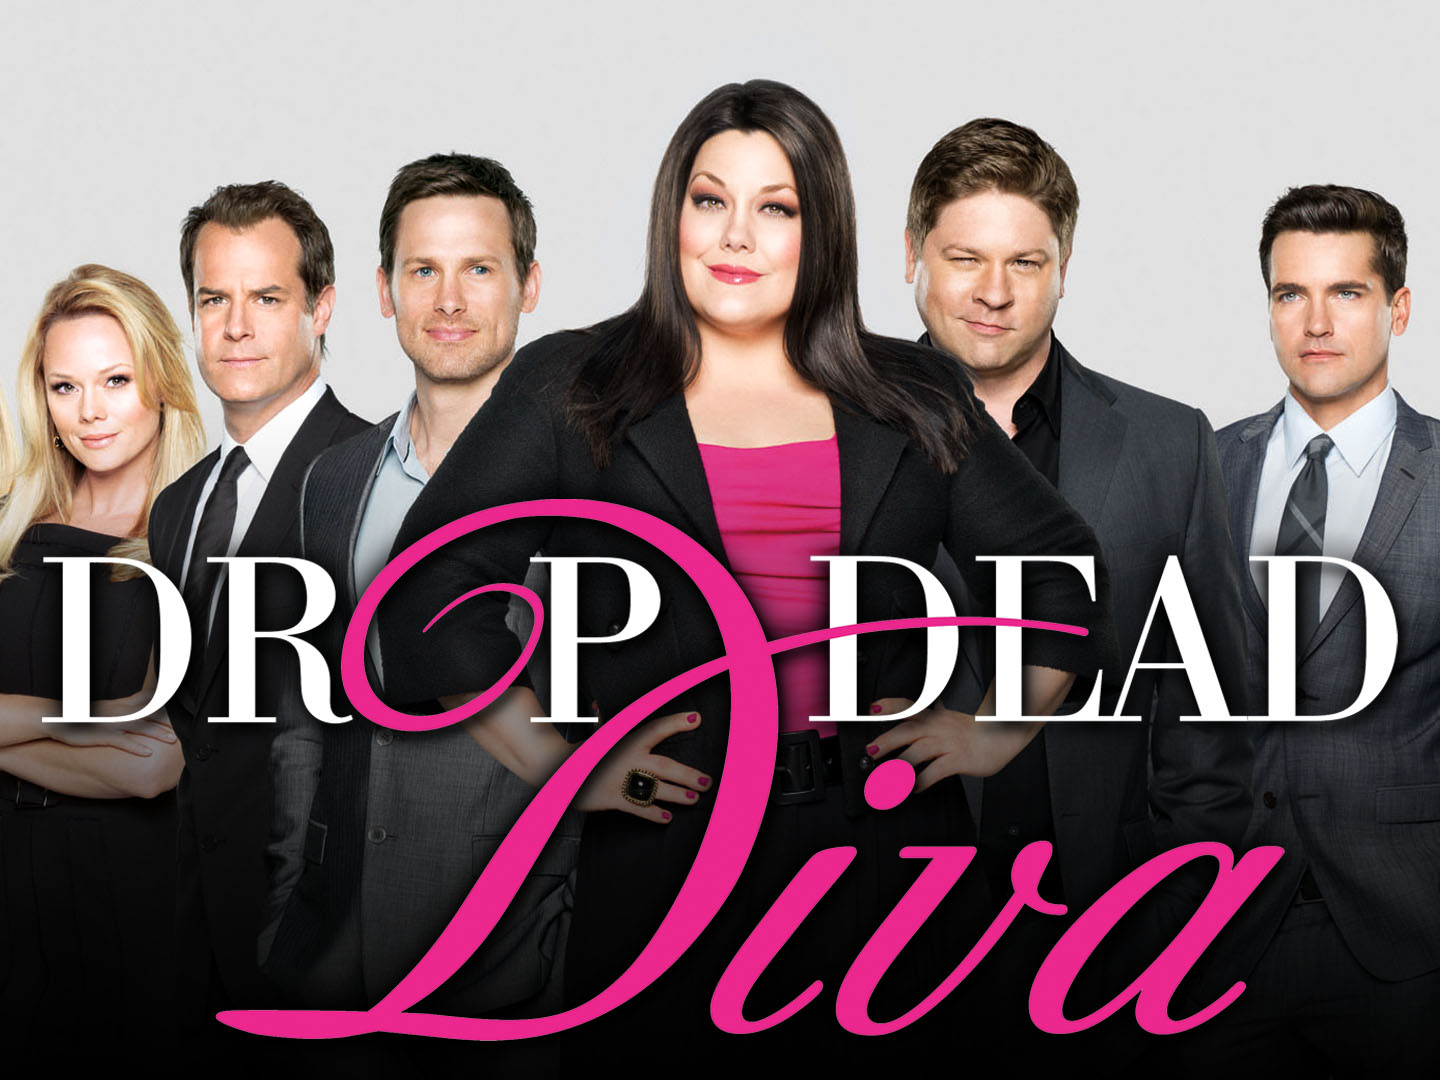 Cancelled tv shows 2013 drop dead diva on life after 4 seasons take poll blastzone mike 39 s - Drop dead diva tv show ...